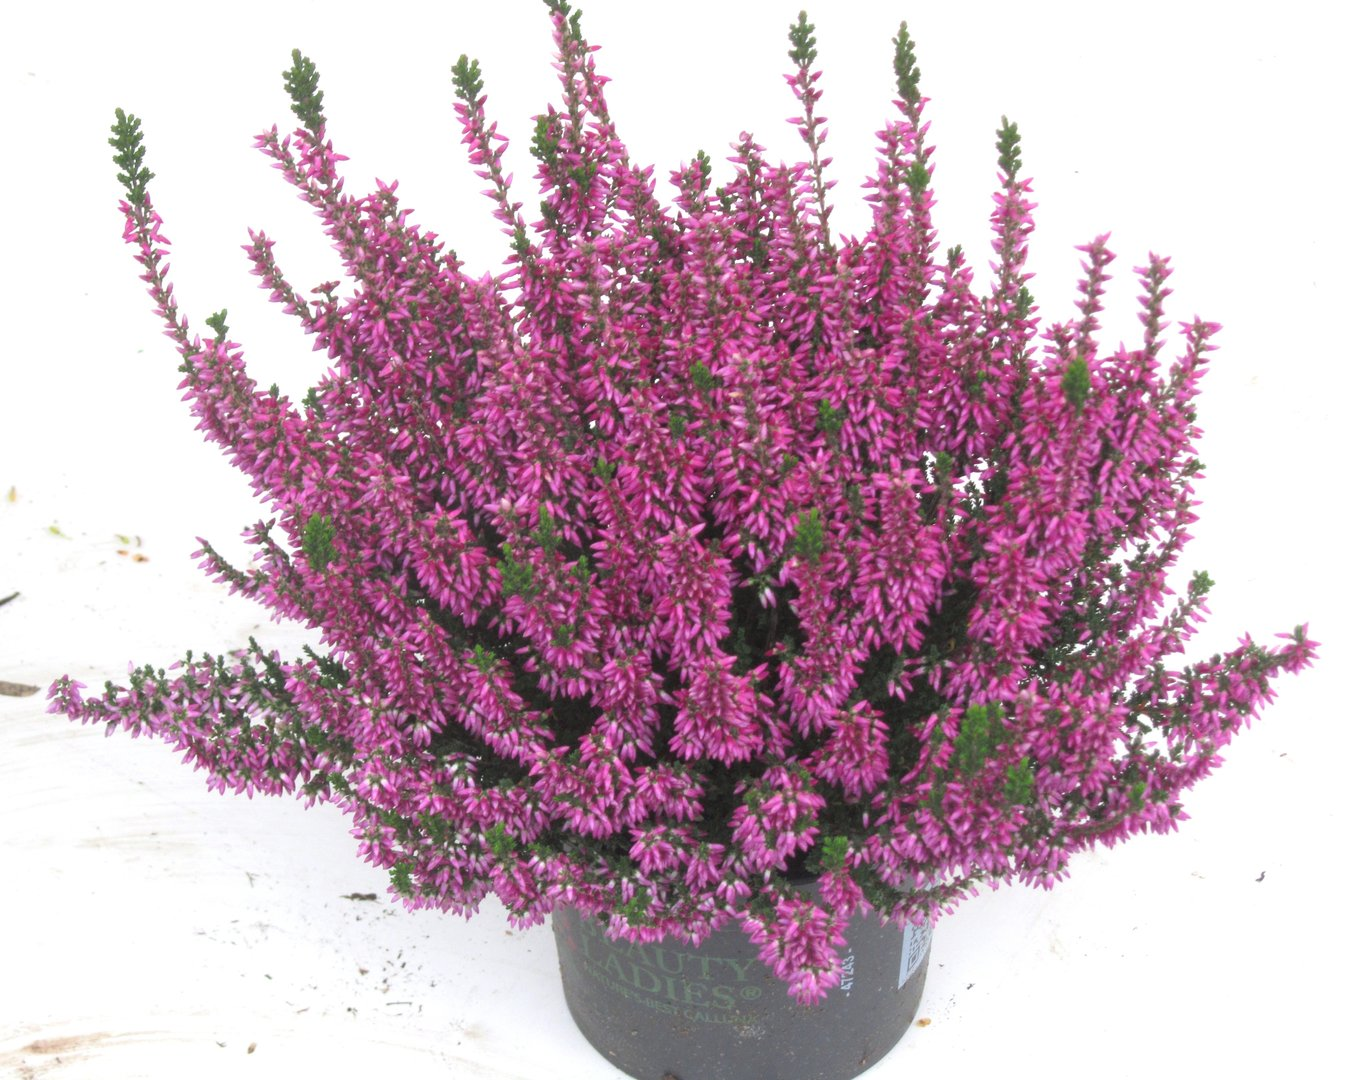 calluna vulgaris besenheide heidekraut lila 12 cm topf pflanzen versand harro 39 s. Black Bedroom Furniture Sets. Home Design Ideas